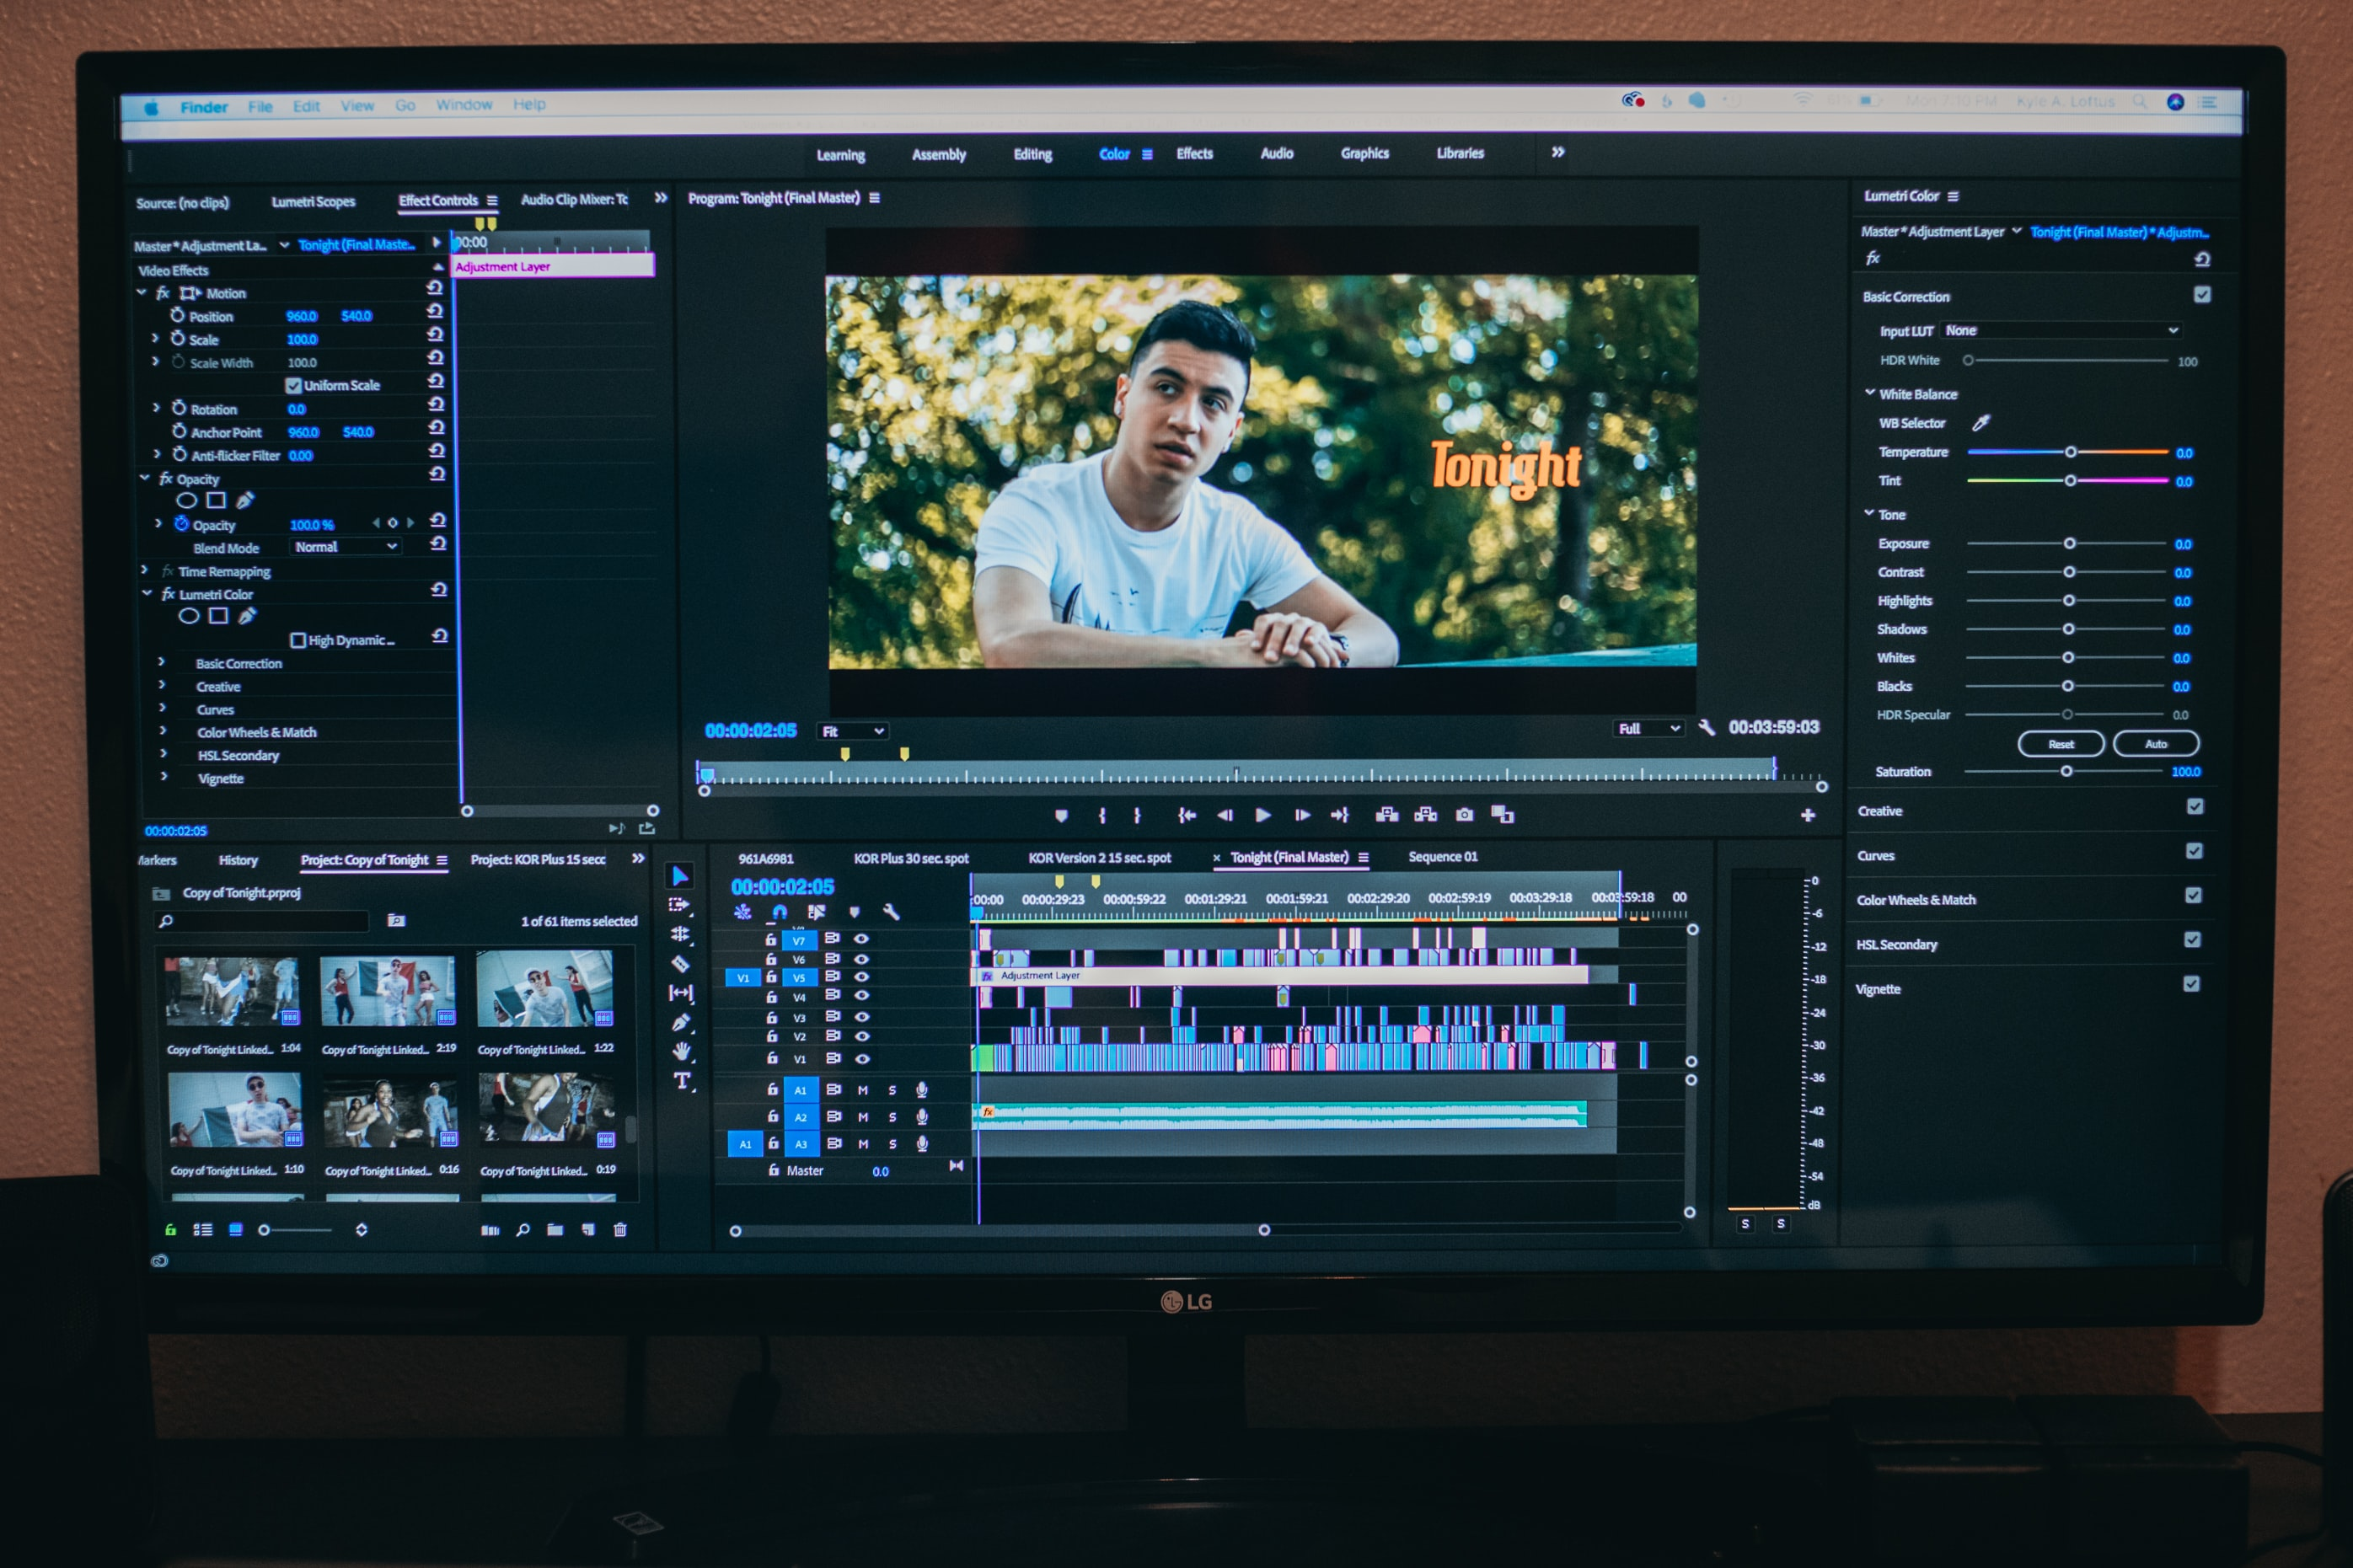 diagetic non diagetic music how to choose music for video video editing tips music filmmakers